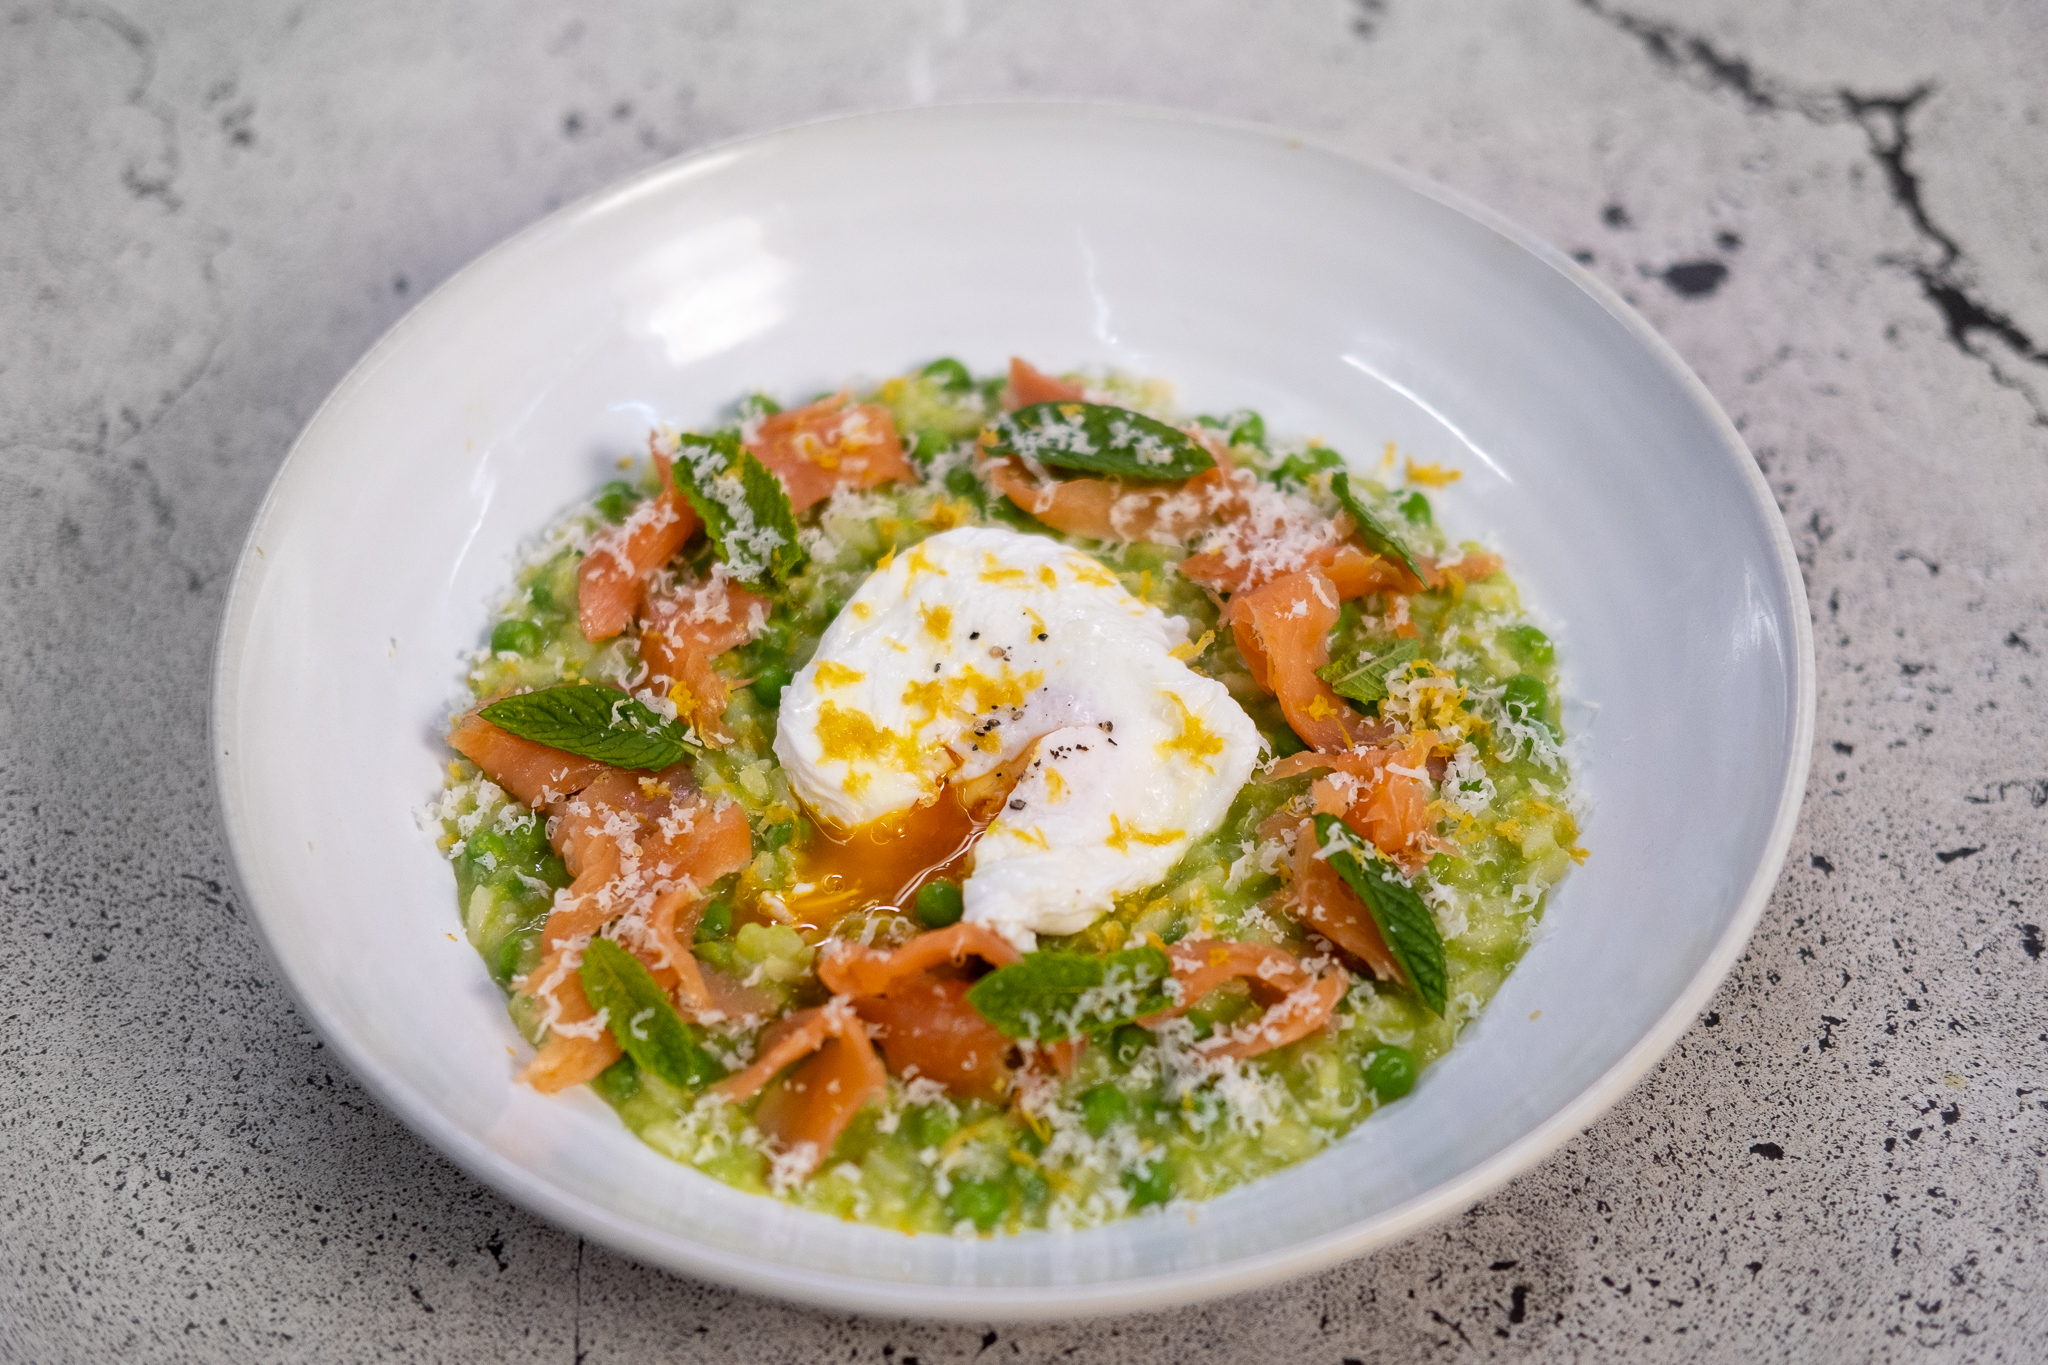 Mark's Pea Risotto, Smoked Salmon and Poached Egg